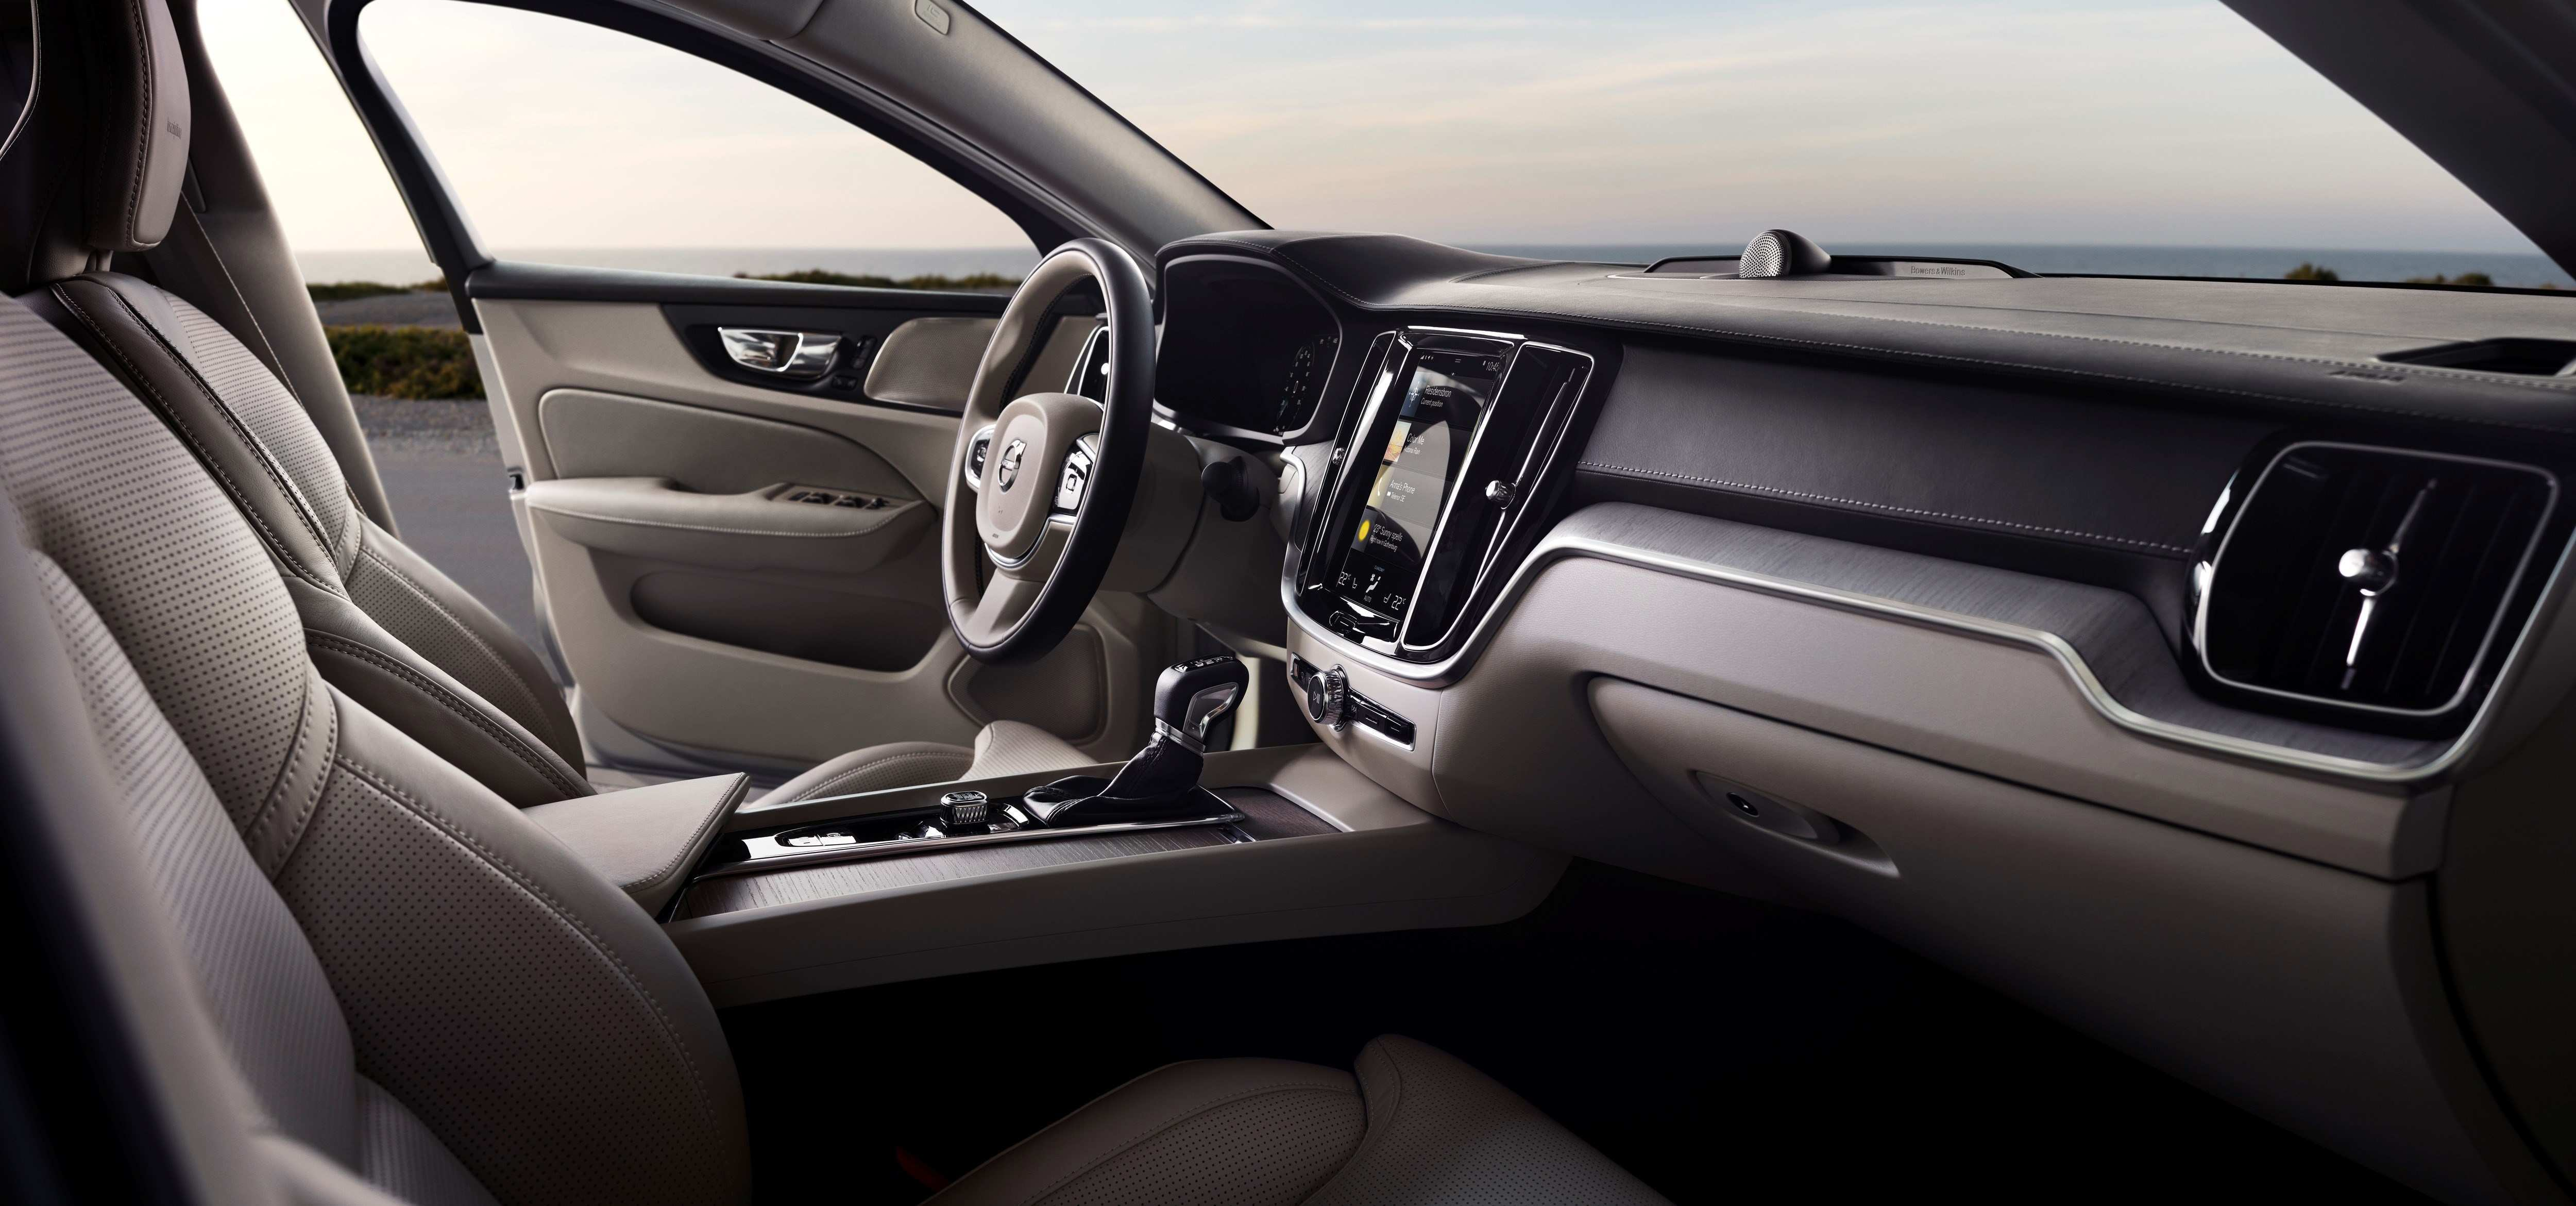 82 Gallery of Volvo S60 2019 Interior First Drive for Volvo S60 2019 Interior